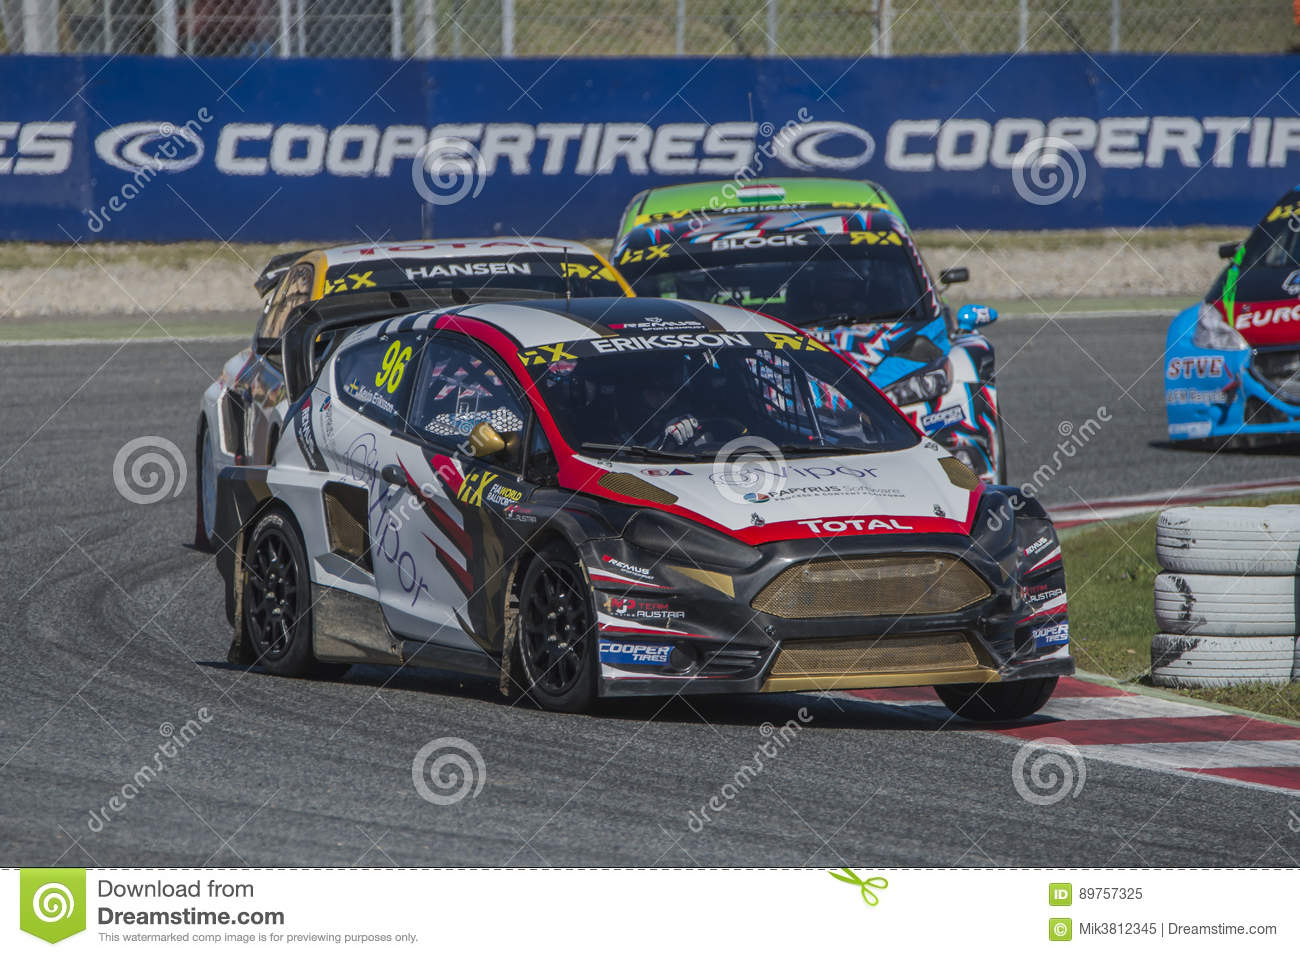 kevin eriksson barcelone fia world rallycross image ditorial image du chemin d but 89757325. Black Bedroom Furniture Sets. Home Design Ideas